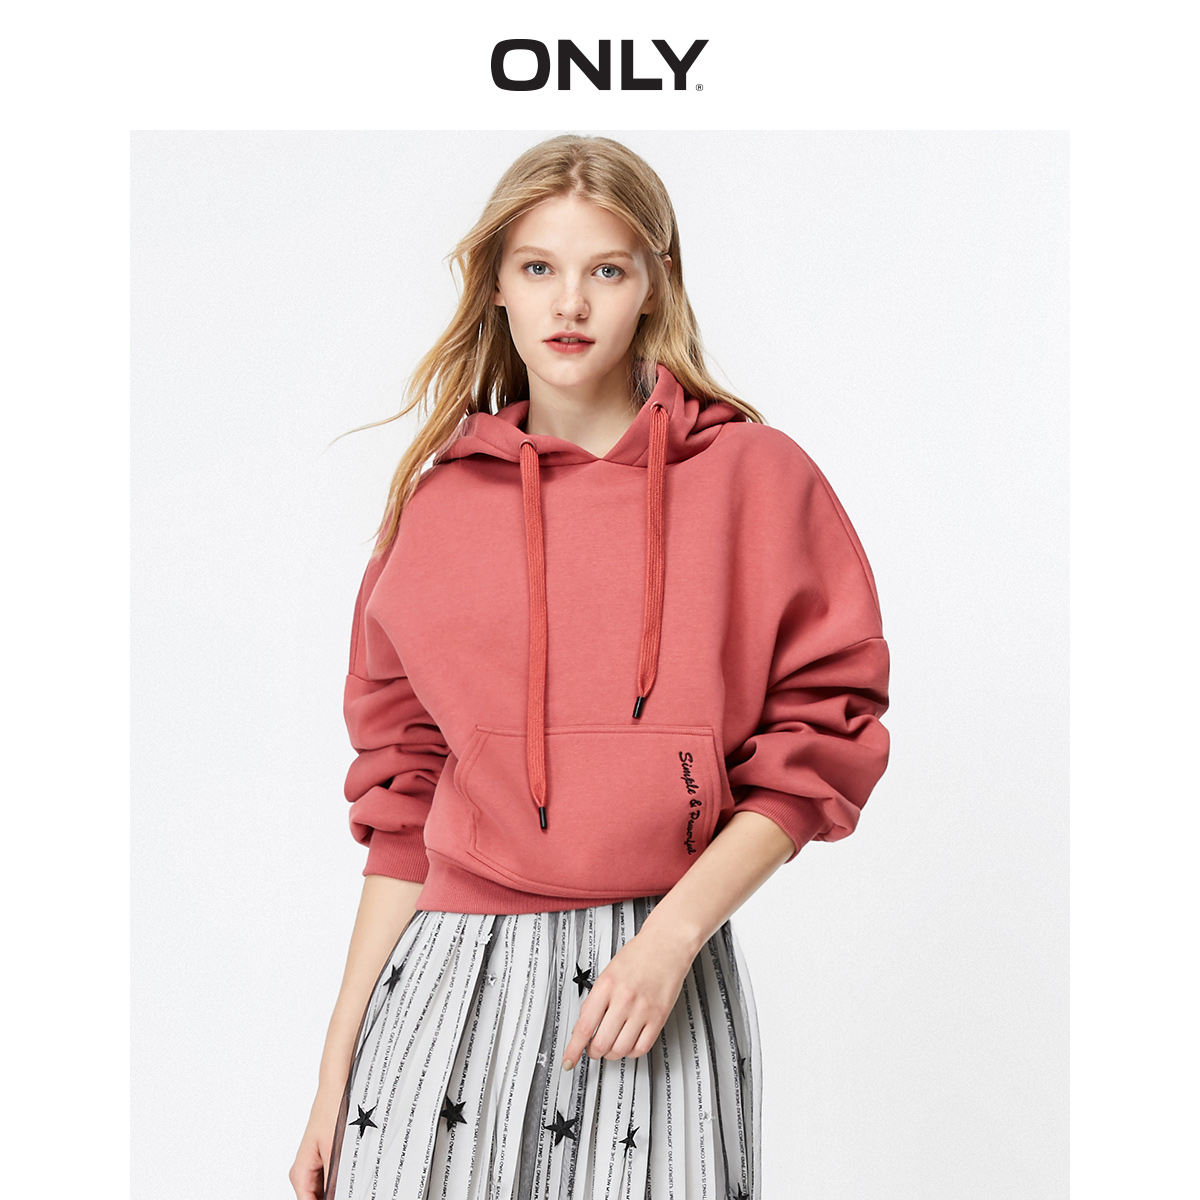 ONLY  Autumn Winter Women's Loose Fit Letter Print Brushed Sweatshirt | 11939S538